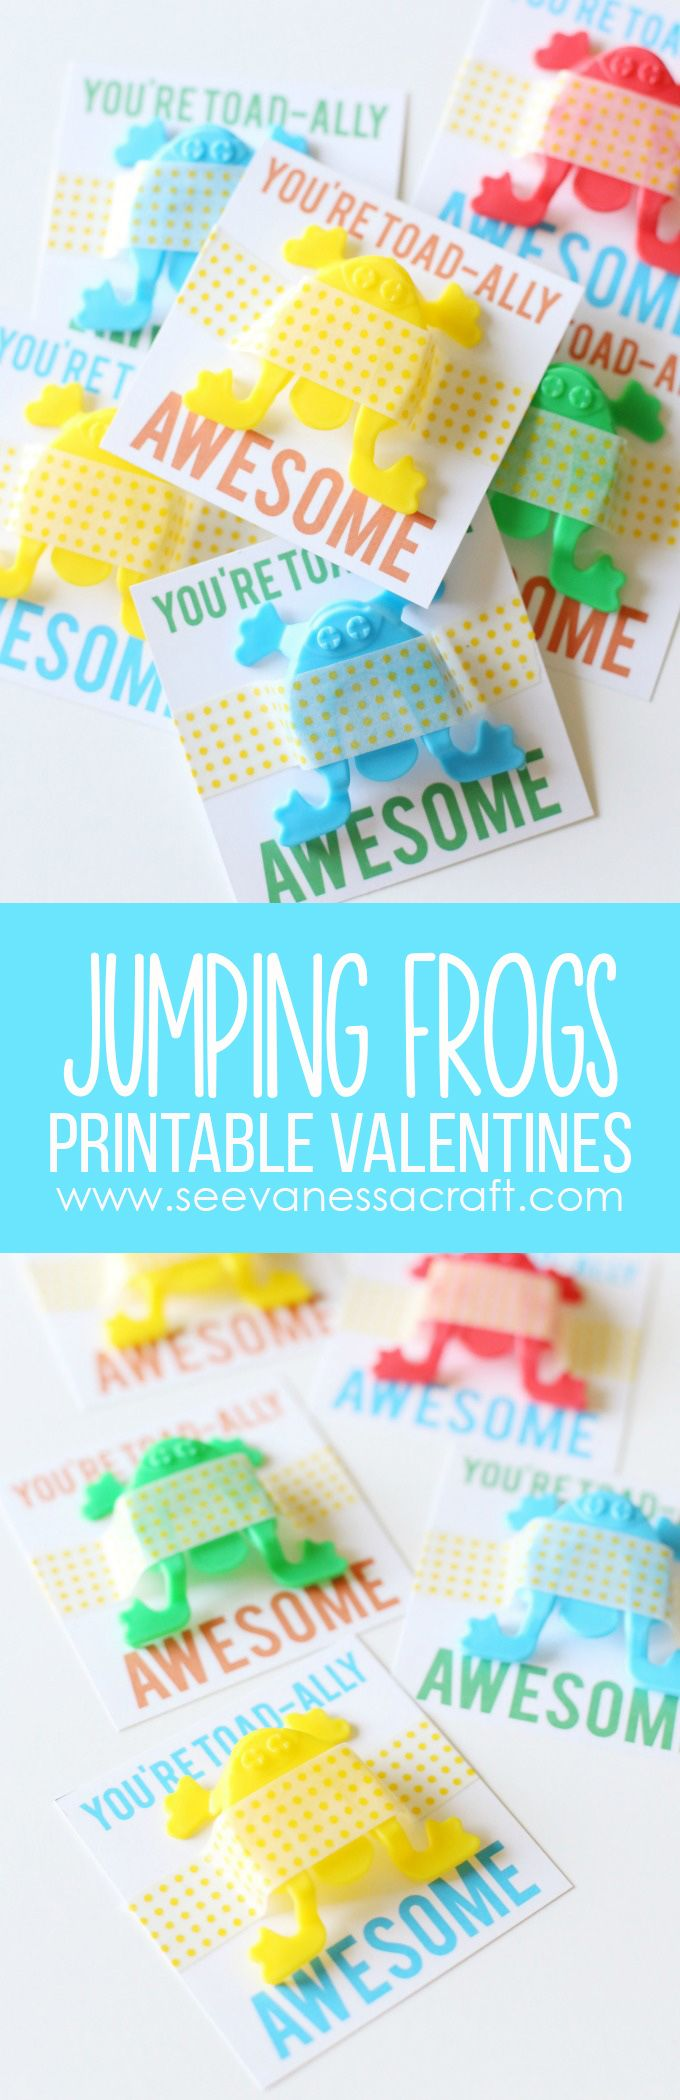 """Valentine's Day Jumping Frogs FREE Printable for Kids: """"You're Toad-Ally Awesome"""""""